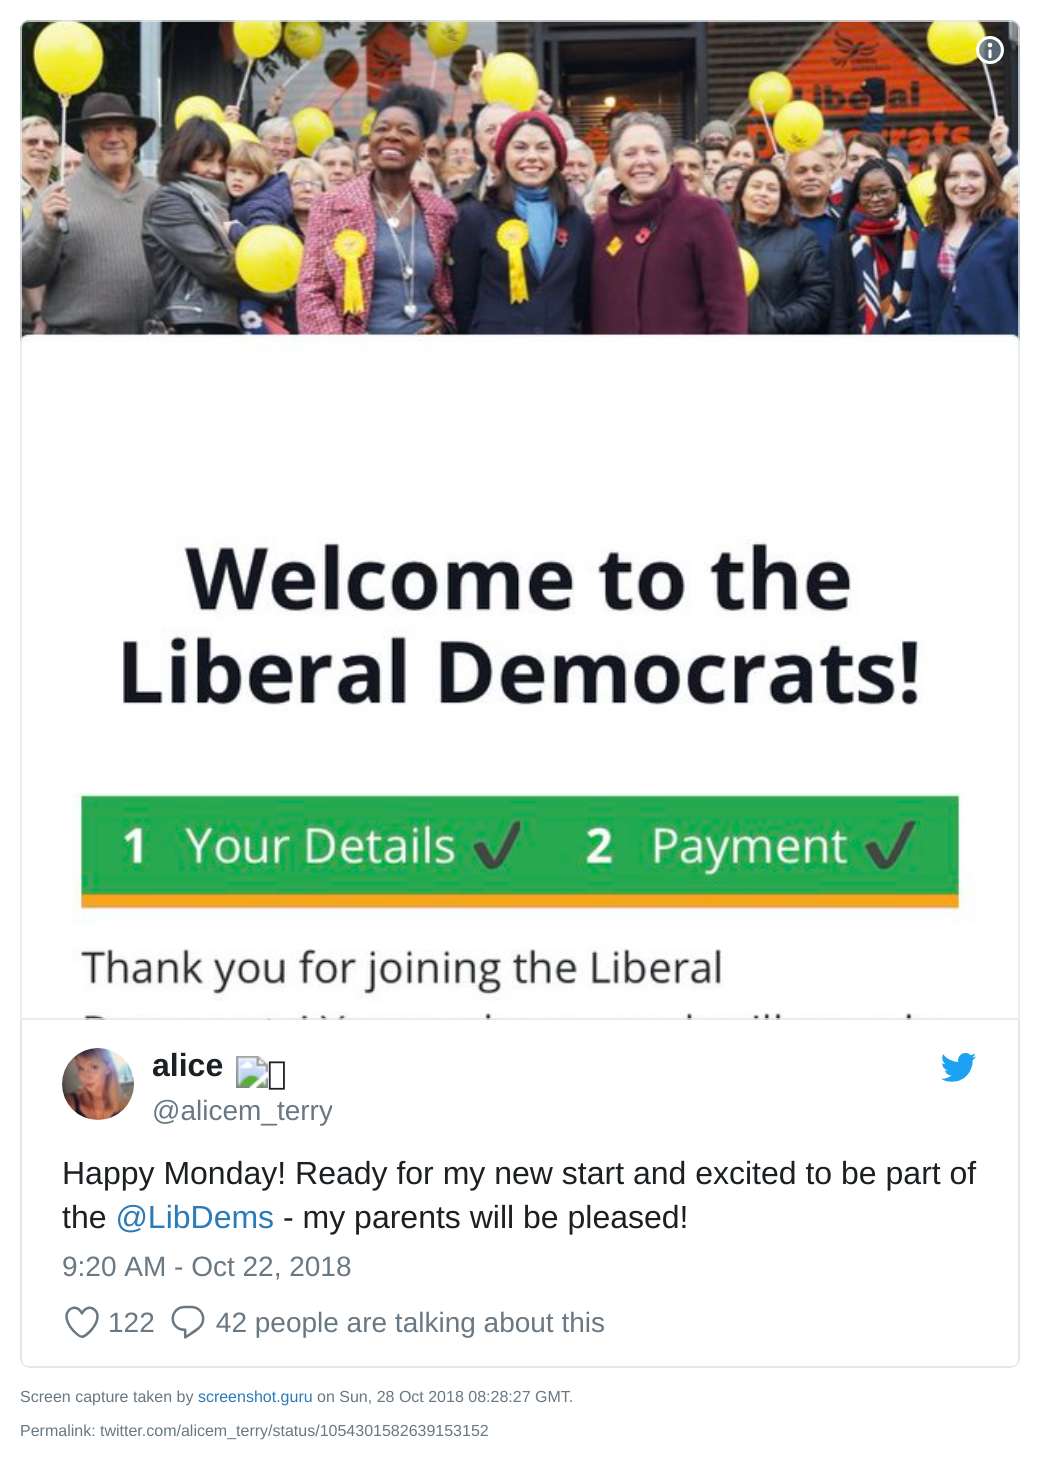 Alice Terry joins Lib Dems